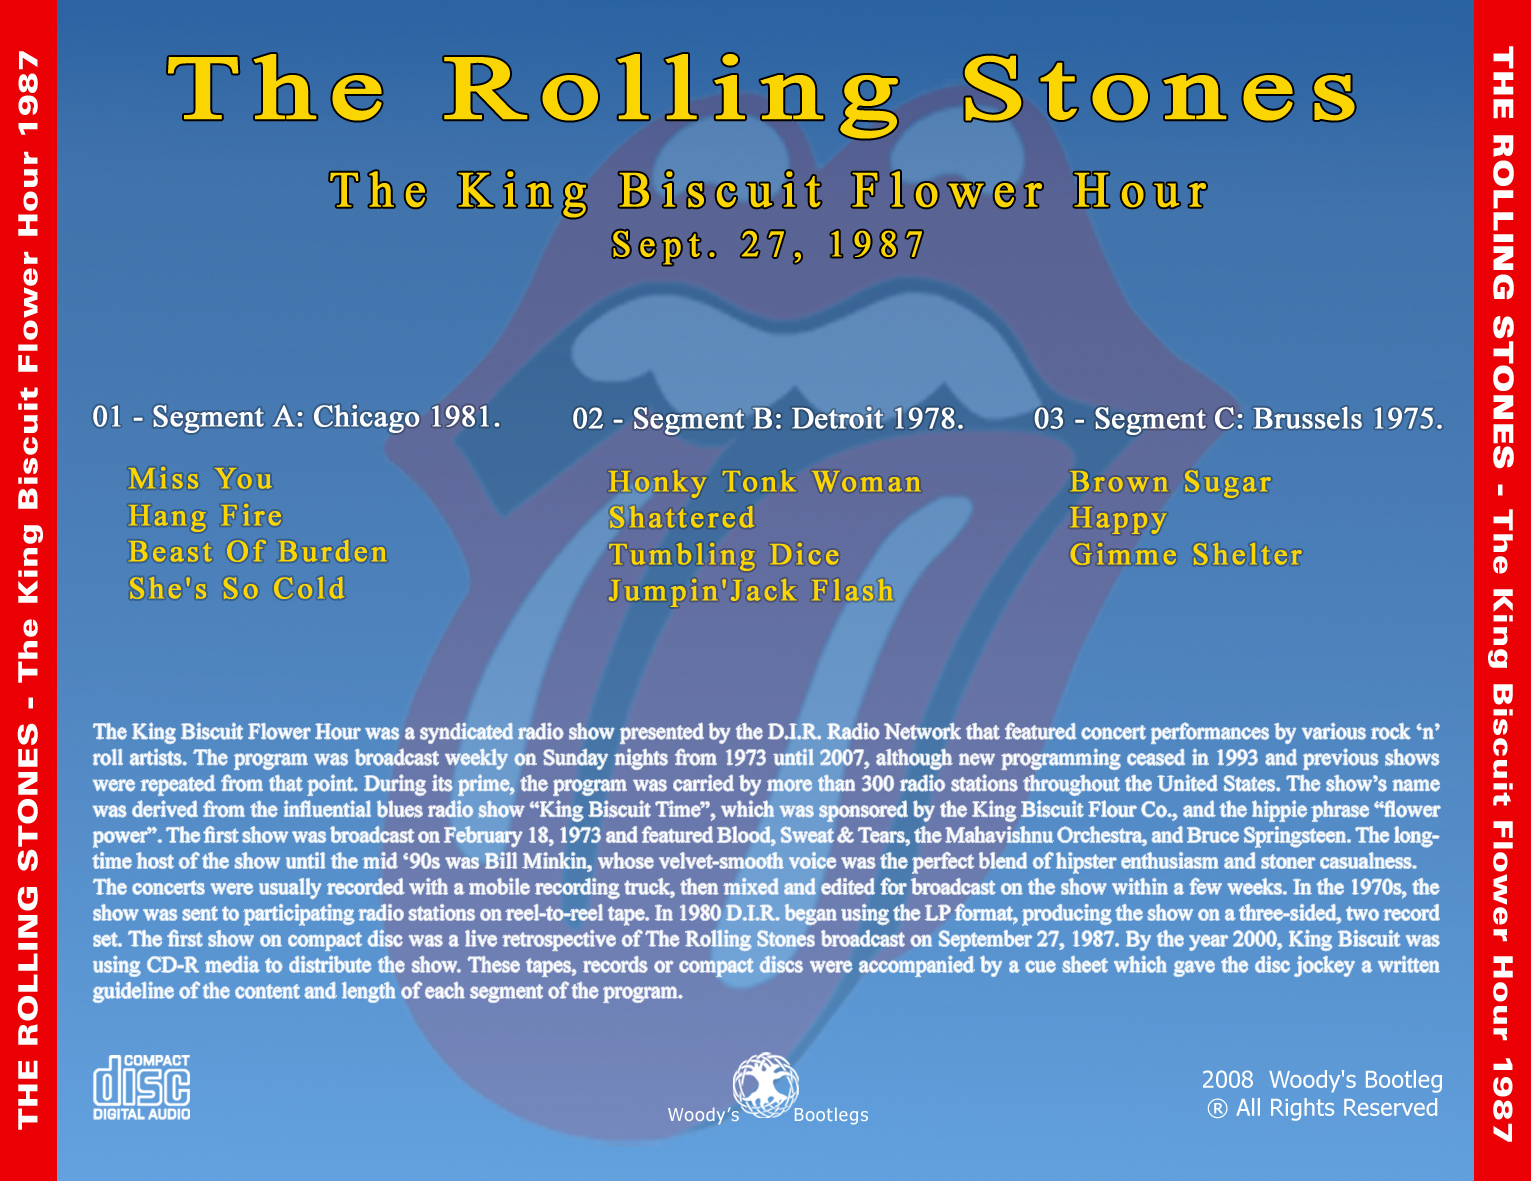 Reliquary Rolling Stones [1987 09 27] A plete KBRH